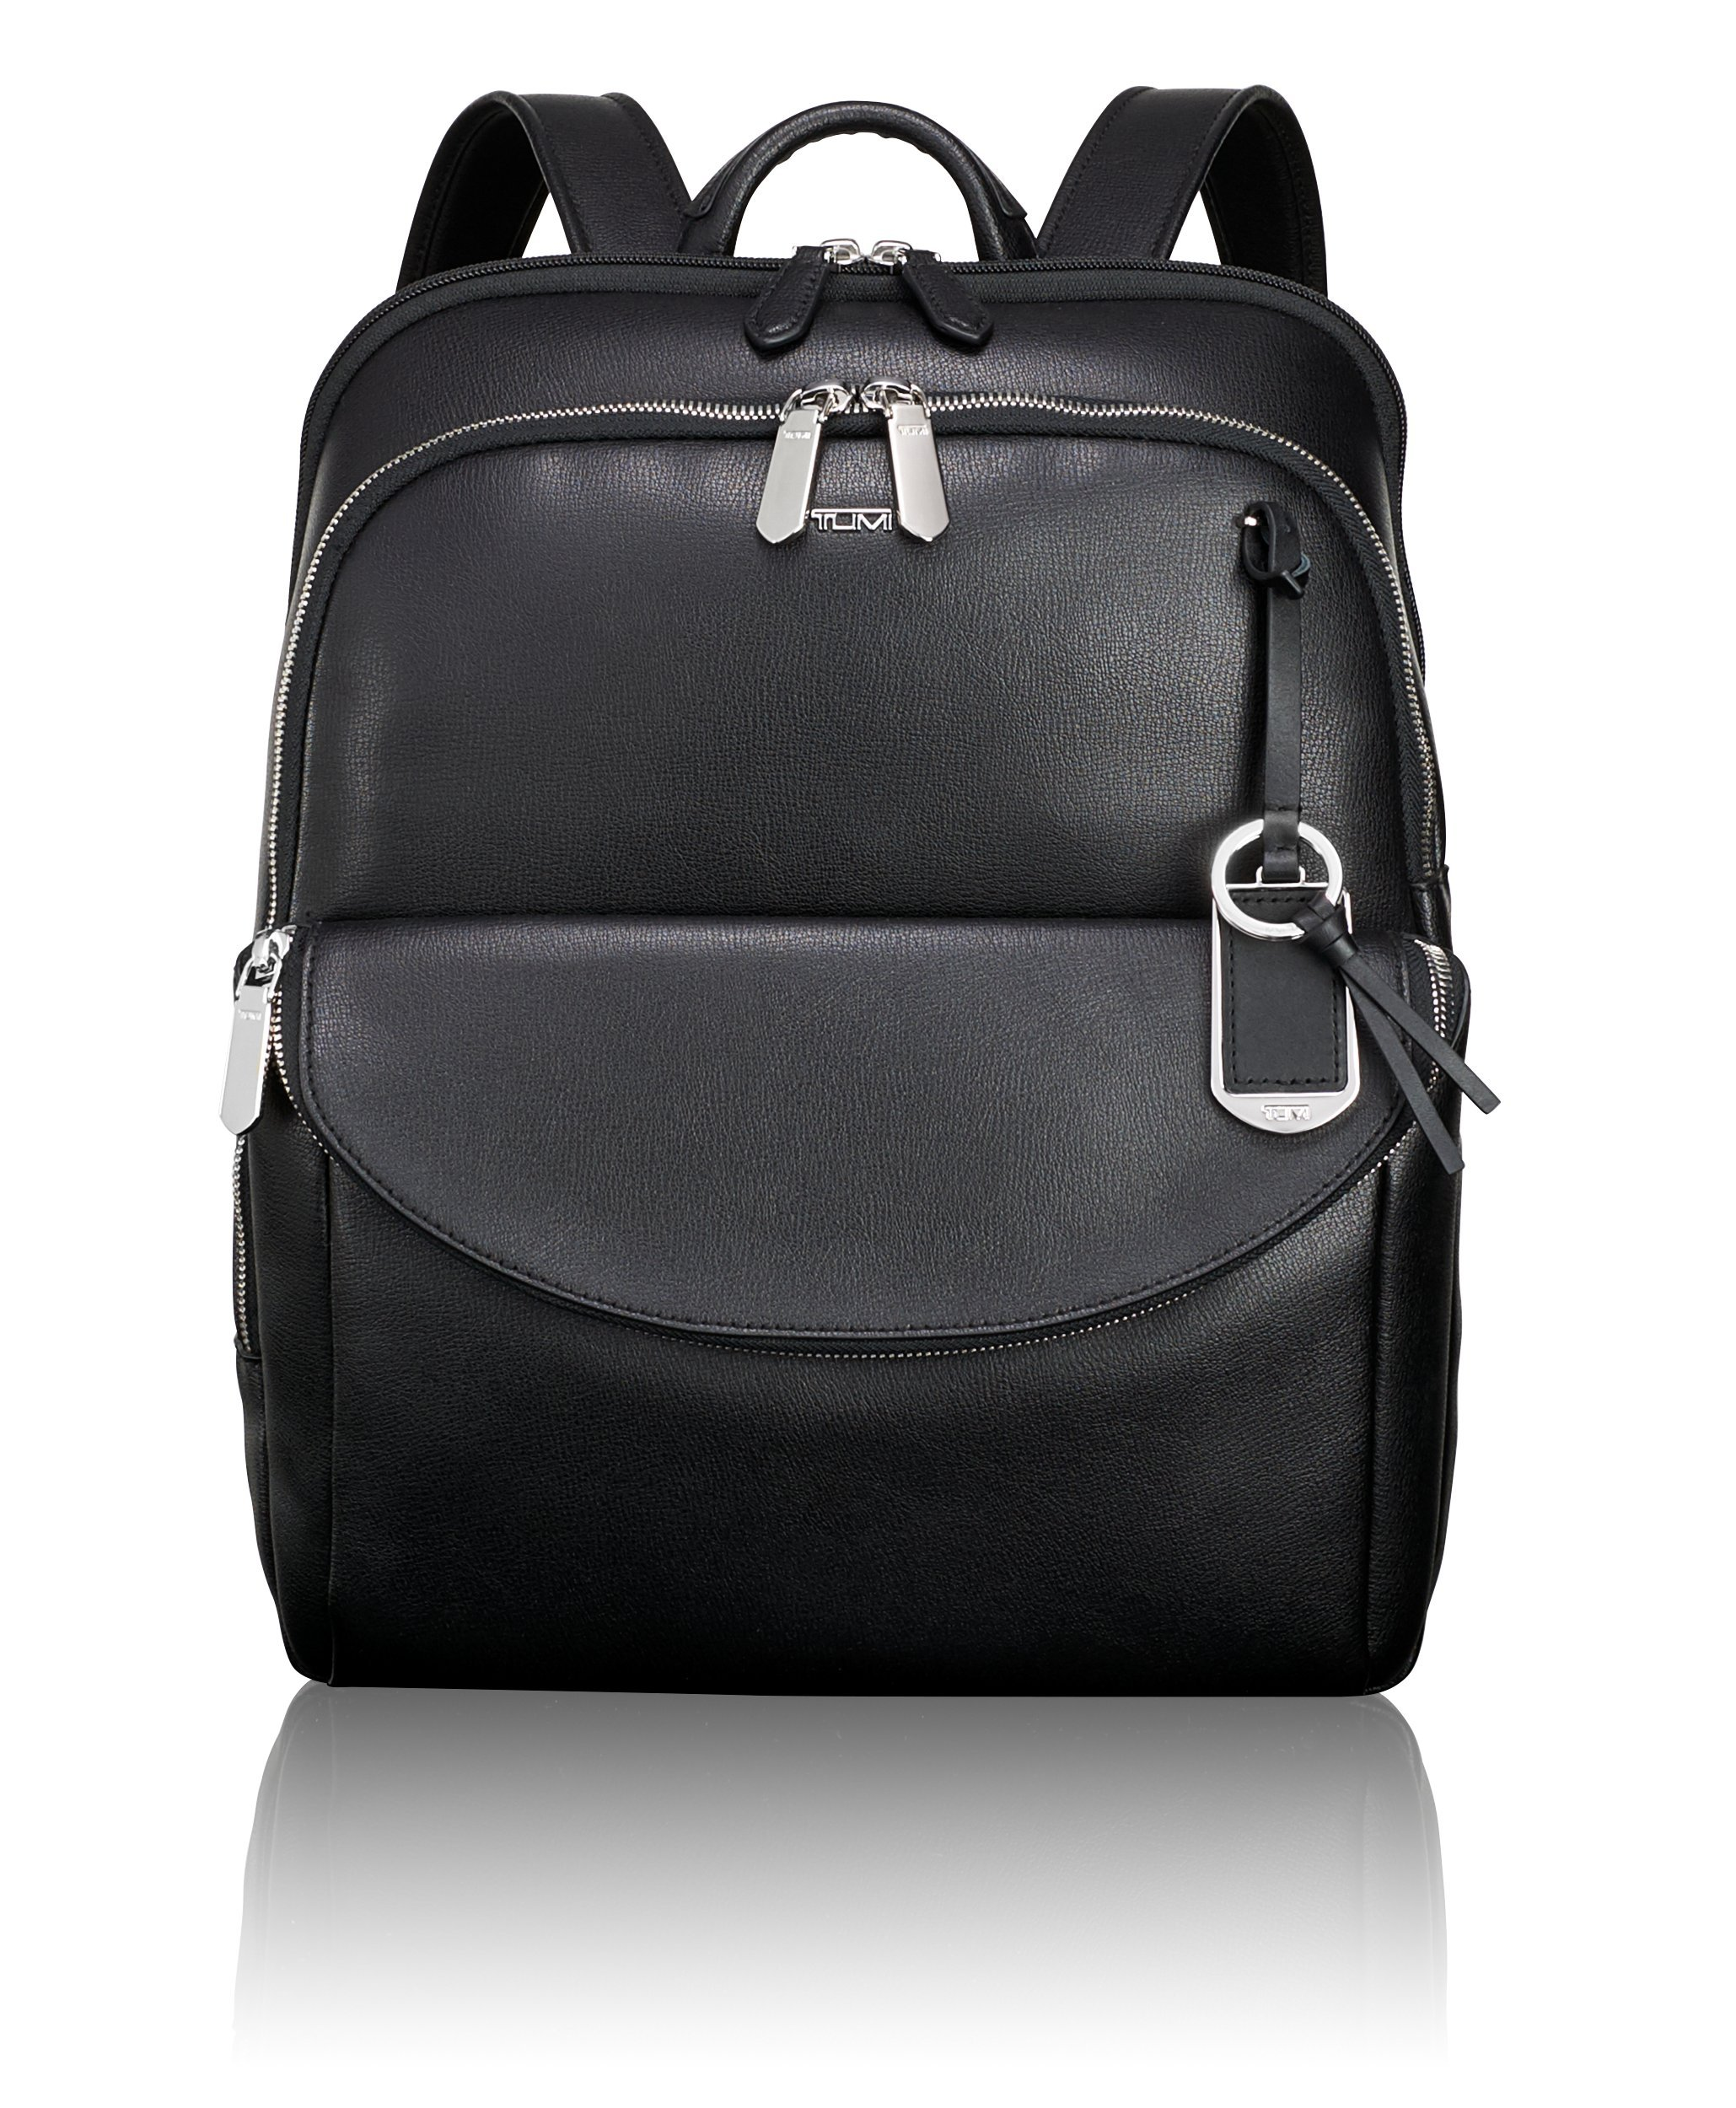 Tumi Women's Stanton Hettie Laptop Backpack, Black, One Size